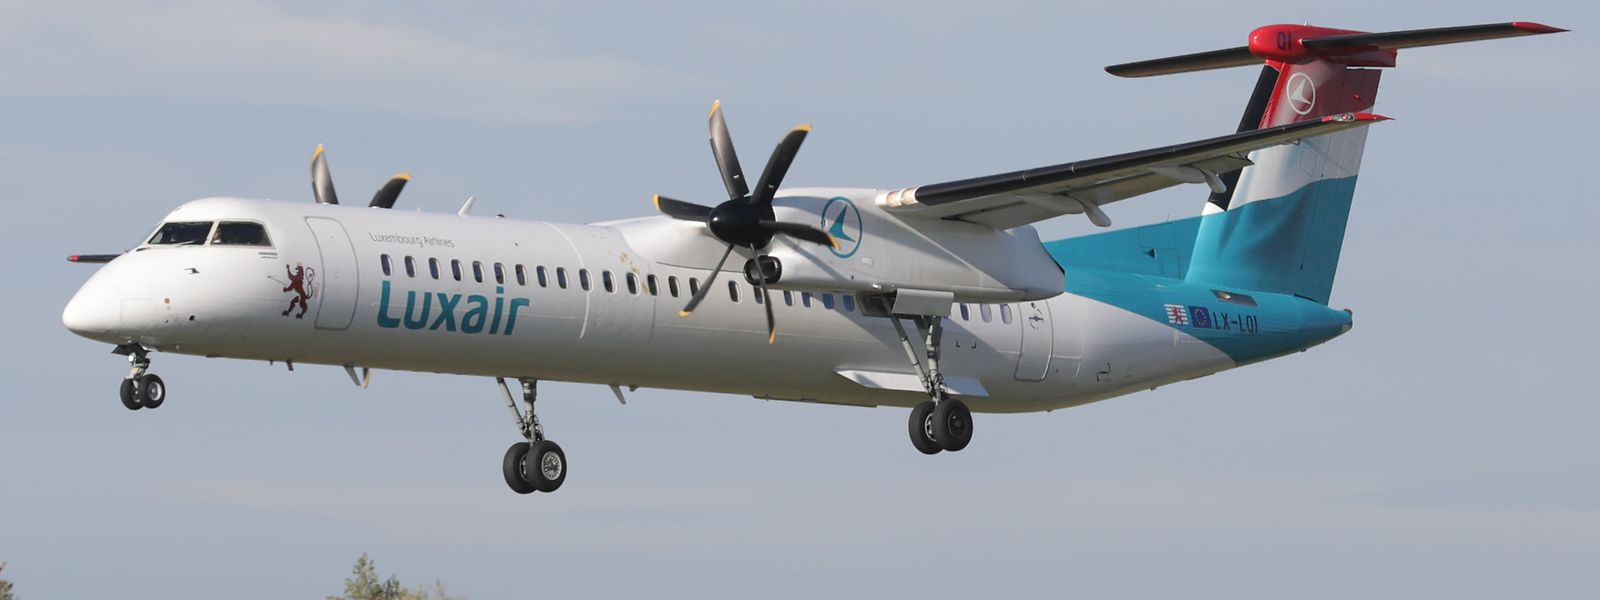 Au total, Luxair Airlines aura transporté plus de 1,4 million de passagers en 2019.